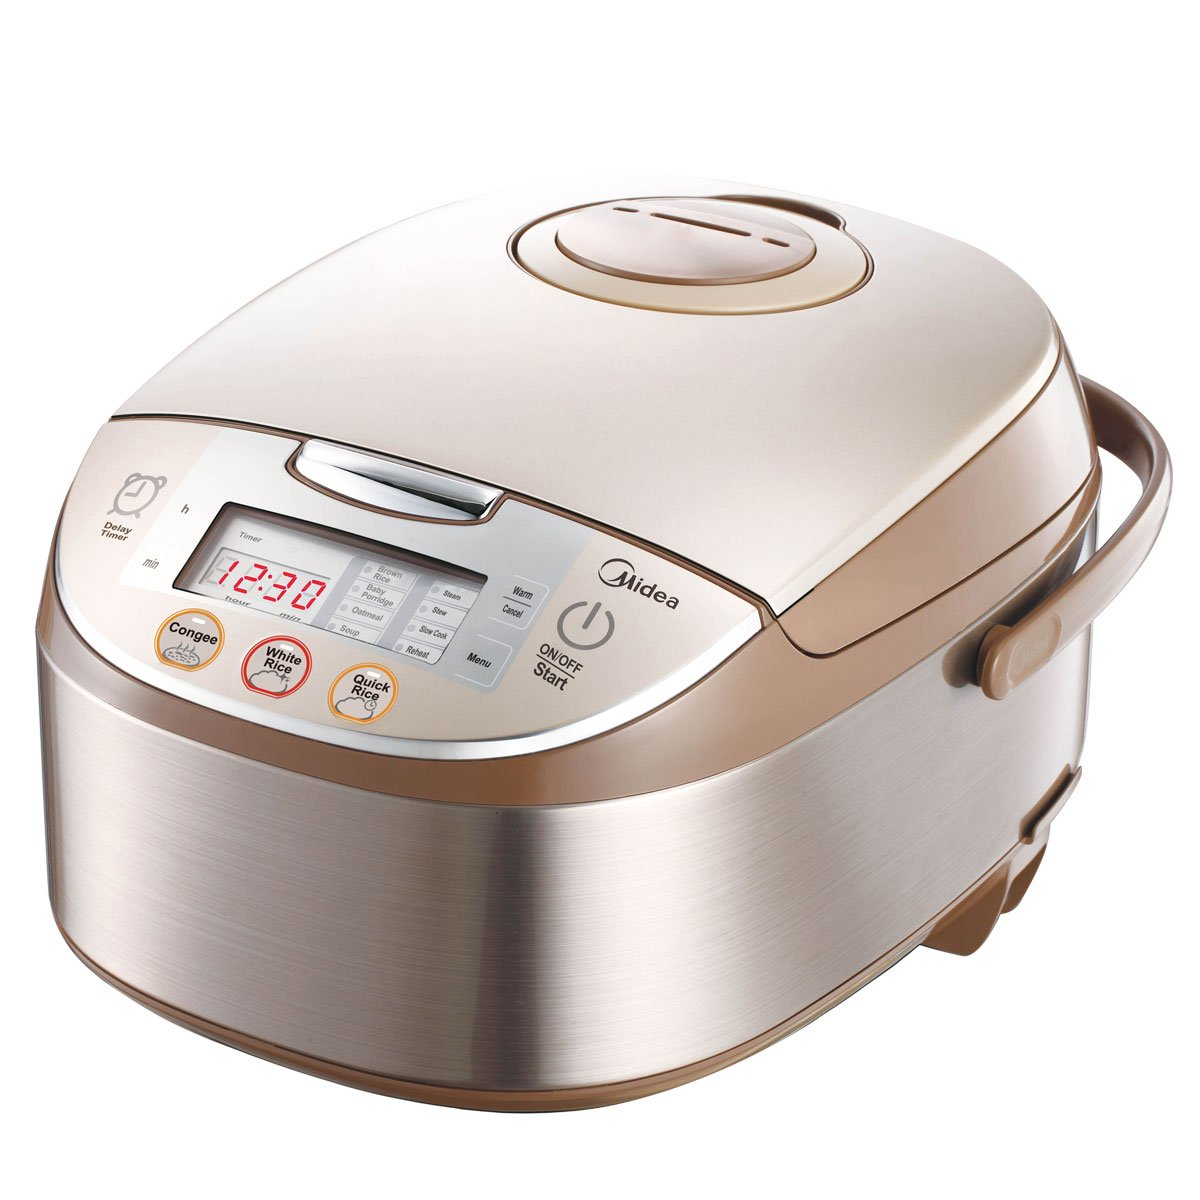 Midea Mb-fs5017 10 Cup Smart Multi-cooker/Rice Cooker/Maker & Steamer & Slow Cooker, Brushed Brown, 5Qt/875W COMINHKPR101394